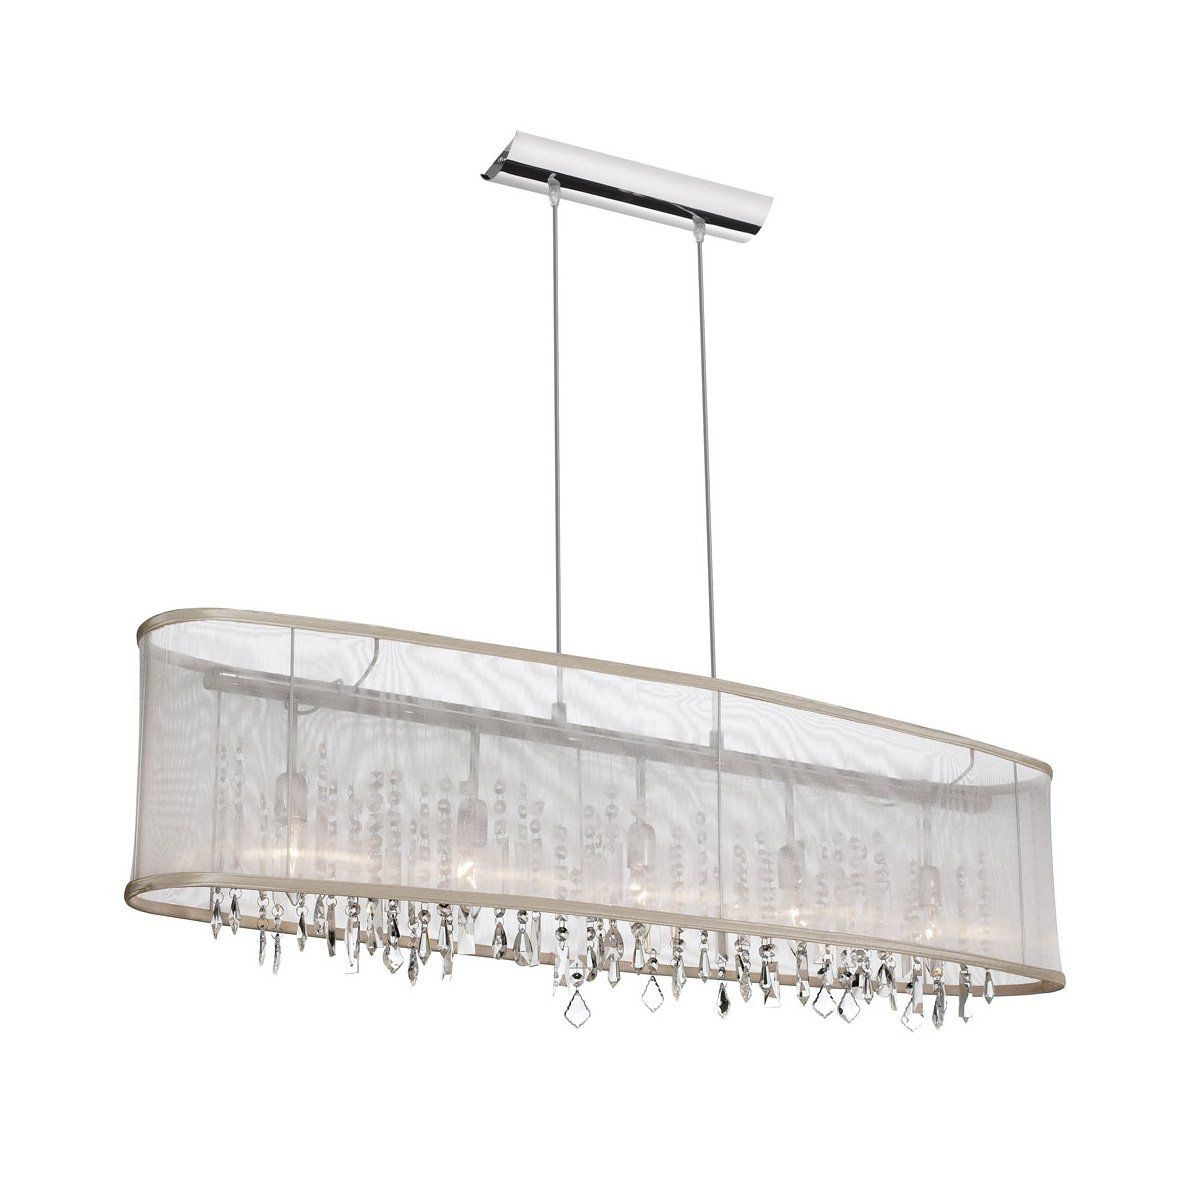 Rectangular organza shade crystal chandelier home design ideas dainolite 85303a 46 117 5 light crystal island pendant with organza aloadofball